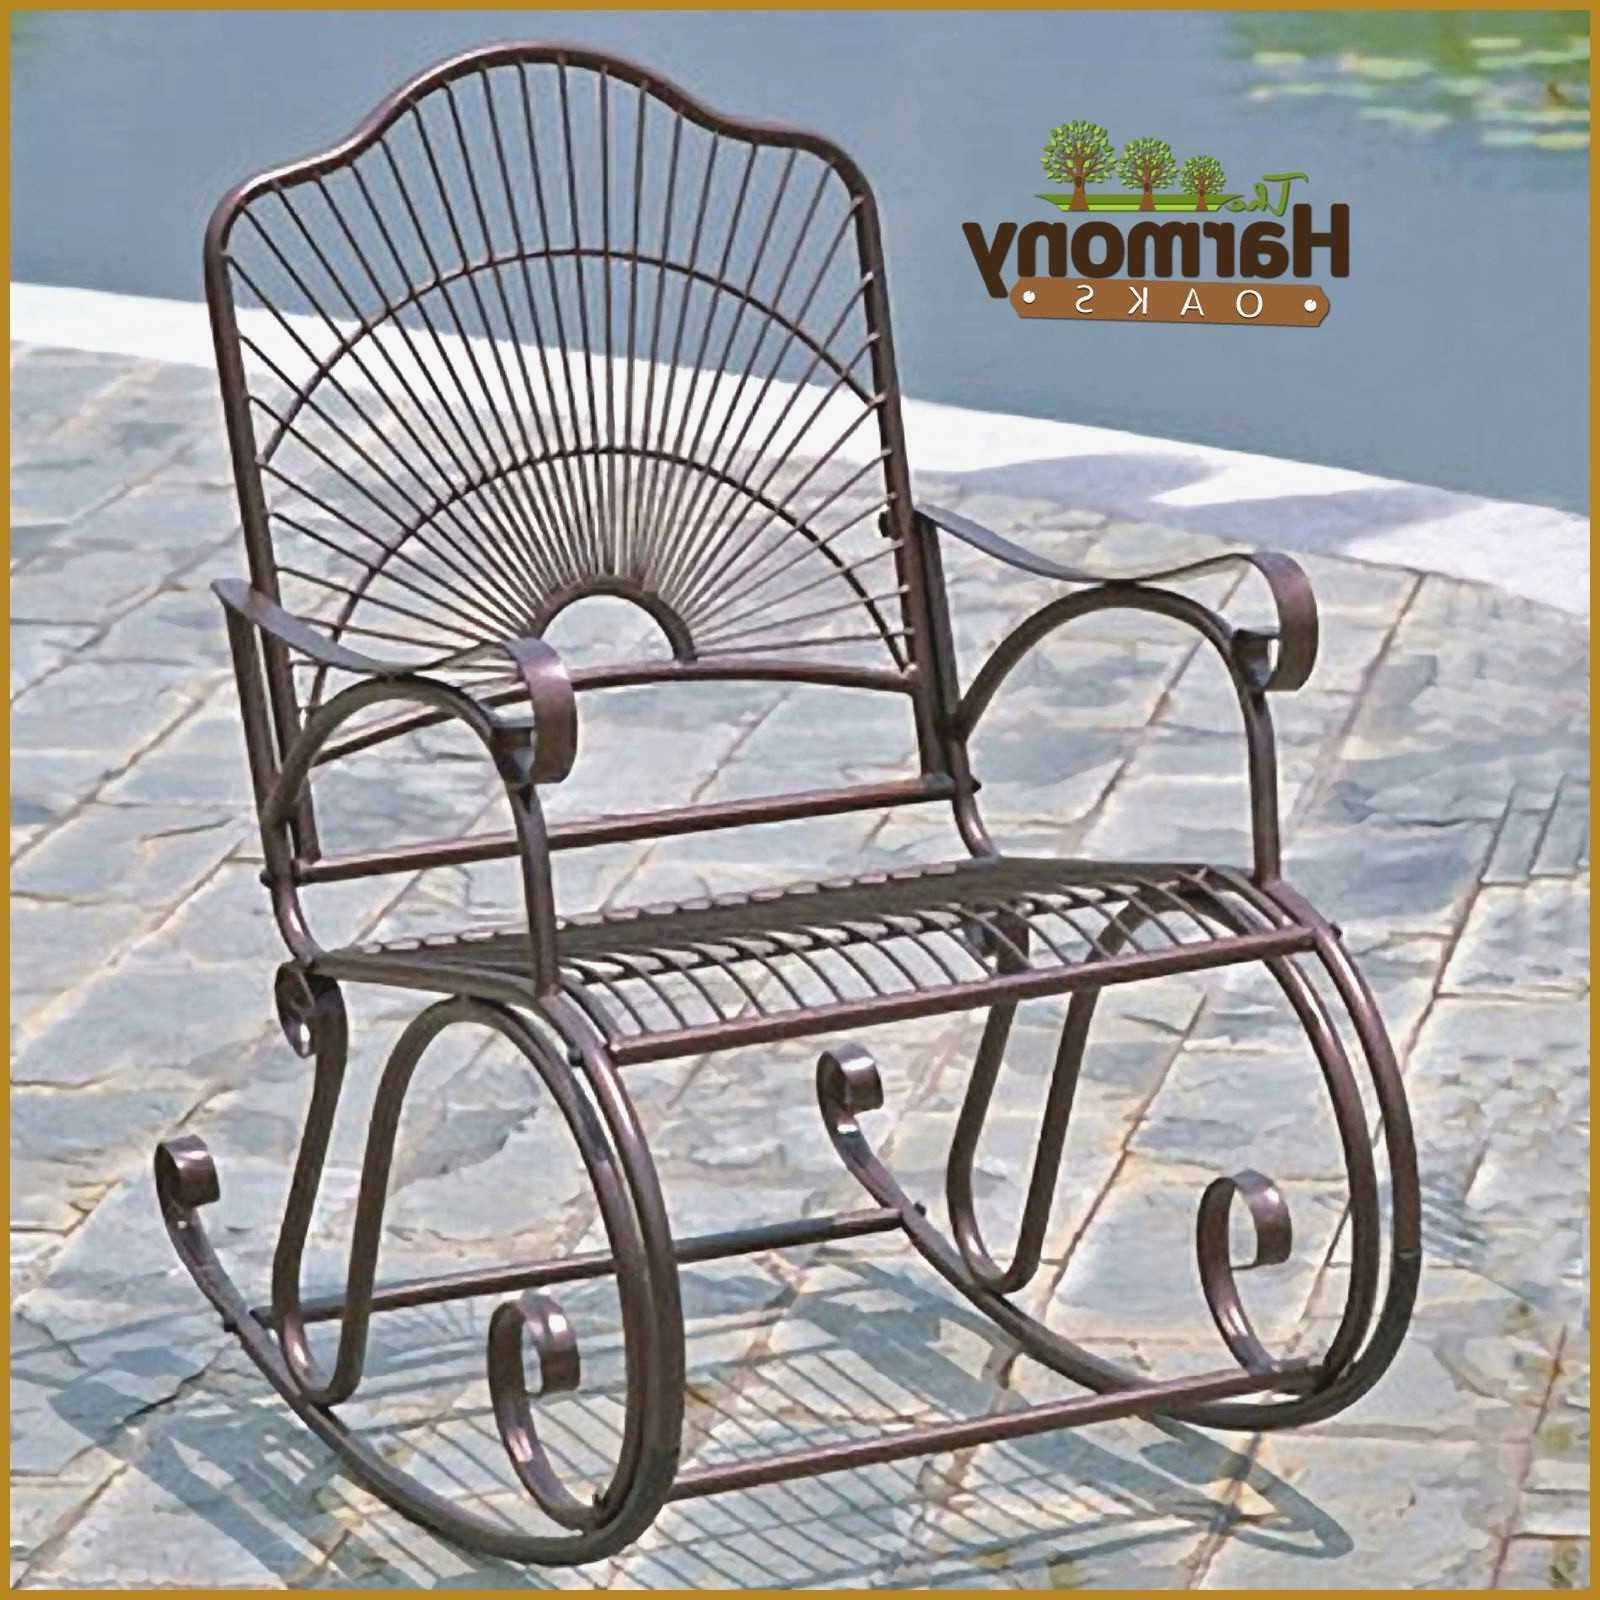 Iron Rocking Patio Chairs Within Most Recent Iron Rocking Patio Chairs Elegant Unique Wrought Iron Rocking Chair (View 9 of 20)